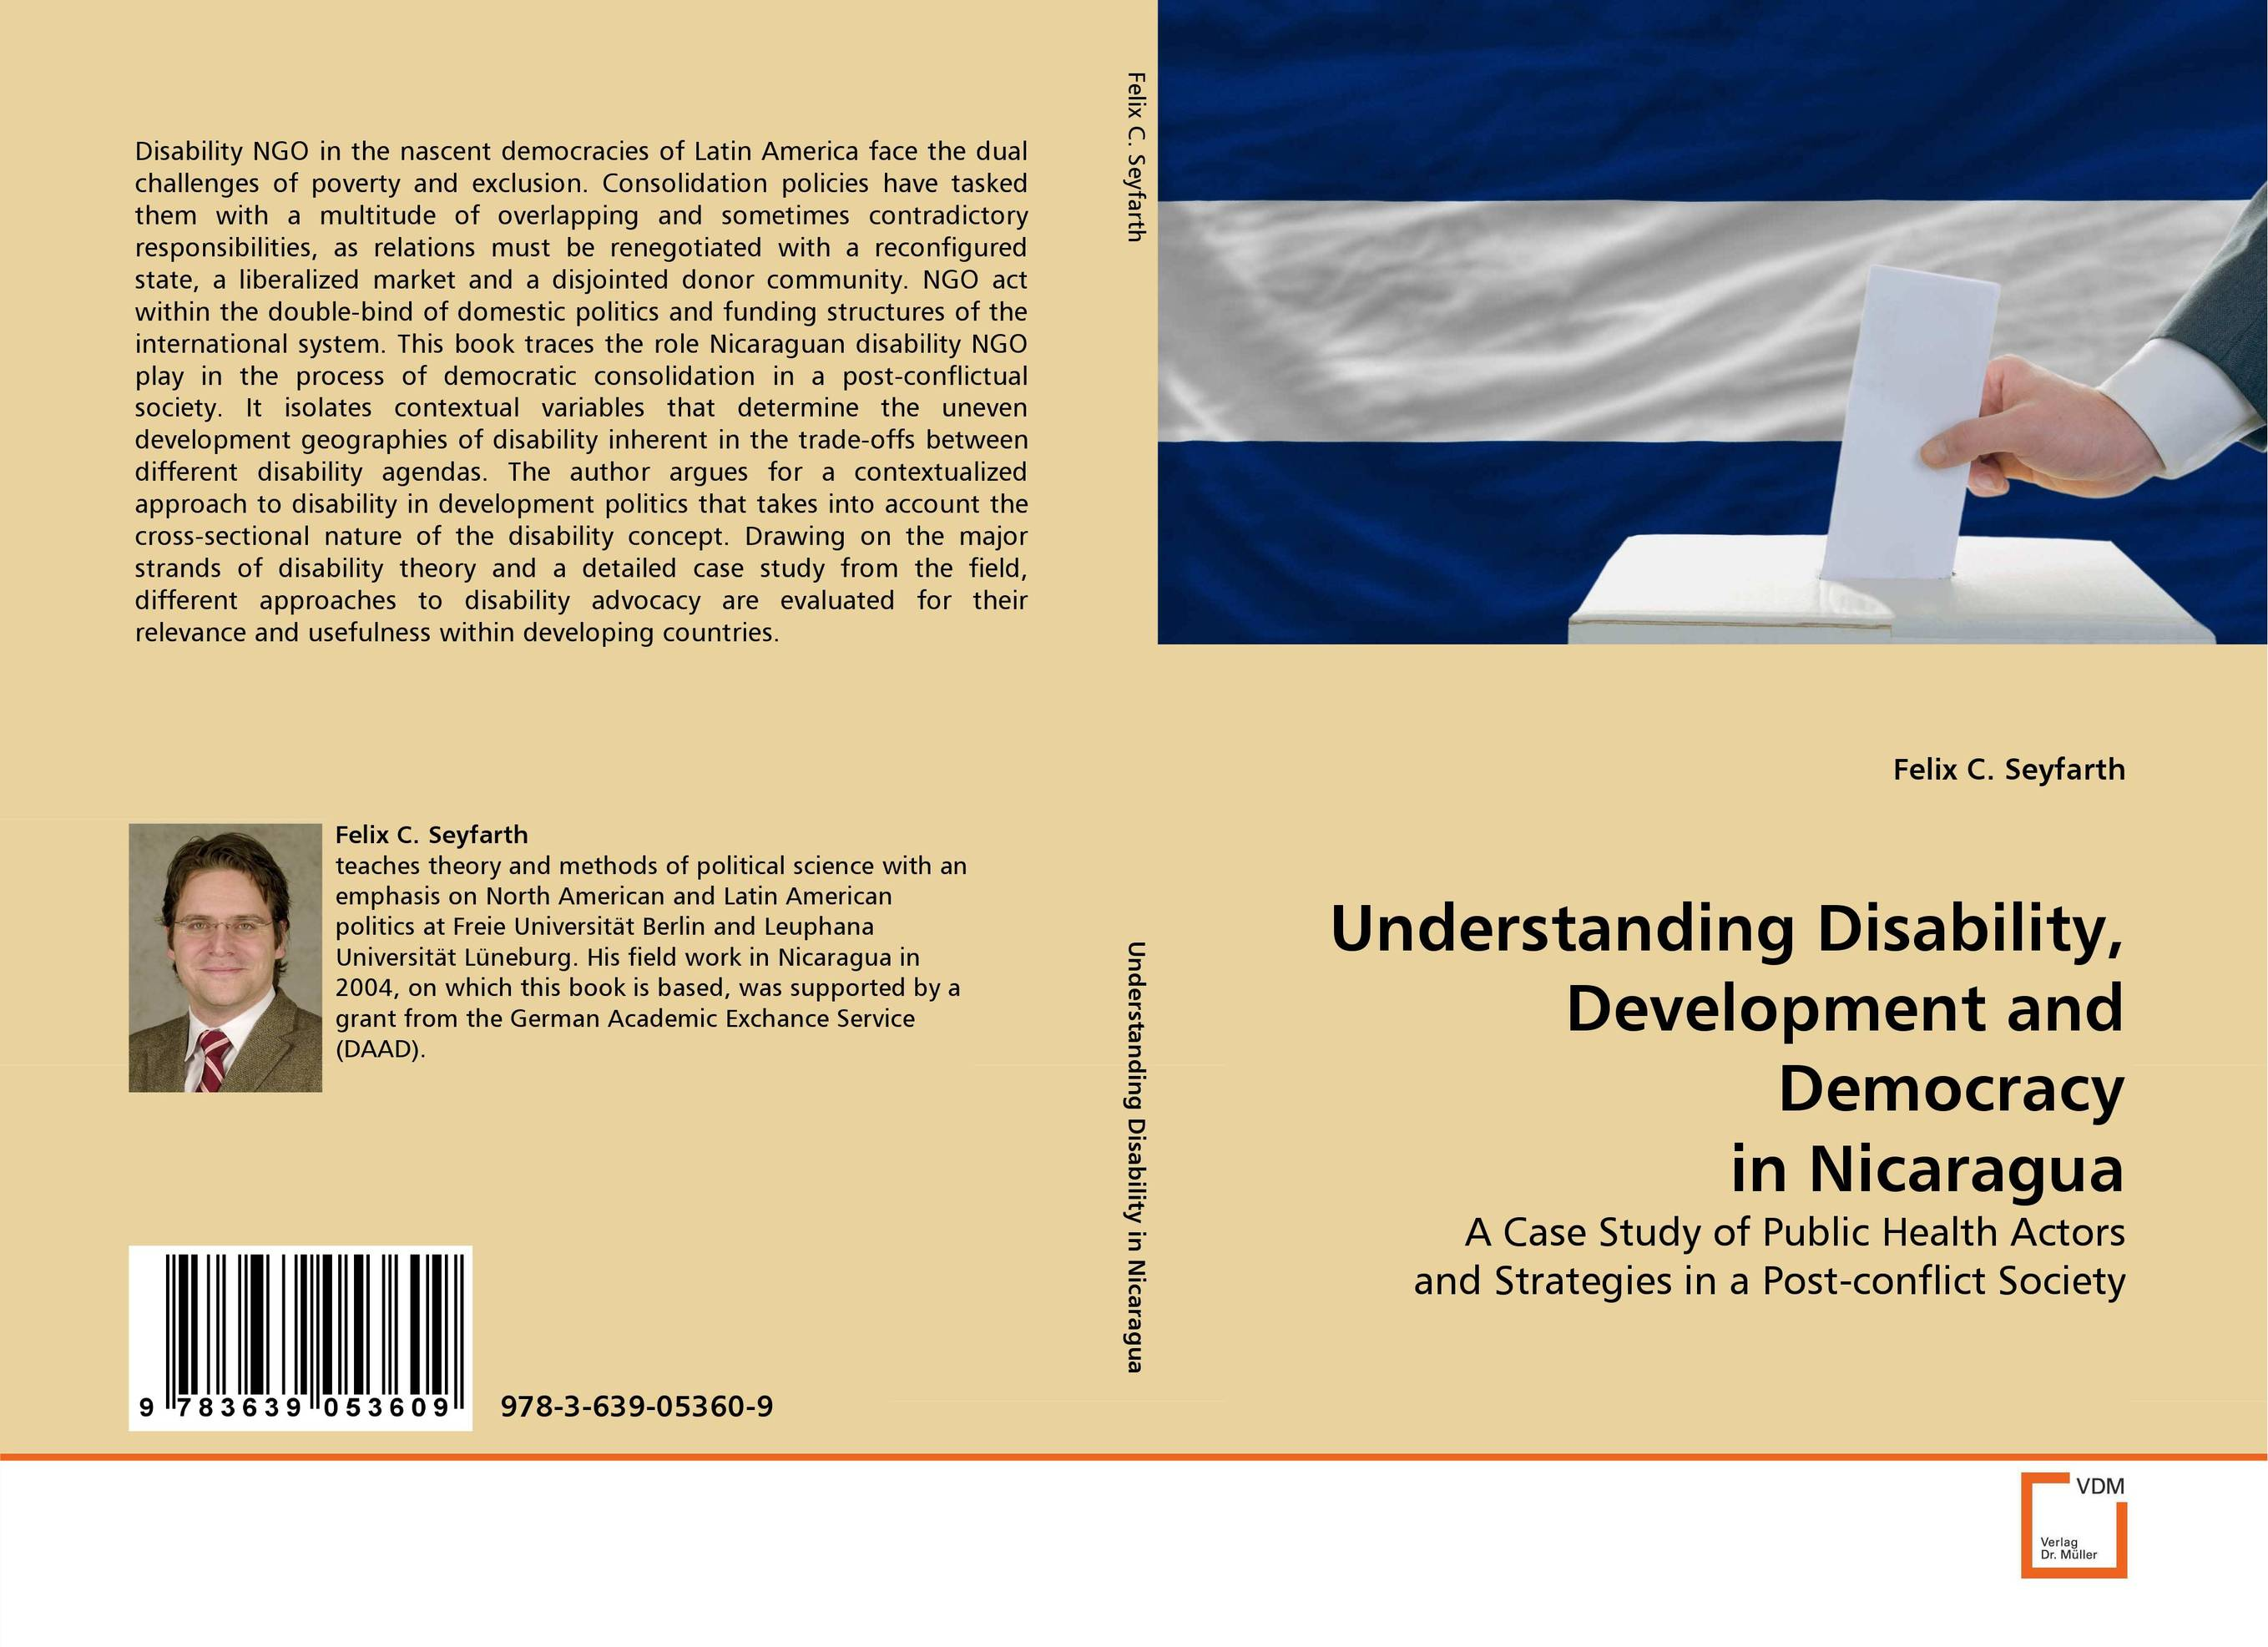 Understanding Disability, Development and Democracy in Nicaragua democracy and dictatorship in uganda a politics of dispensation